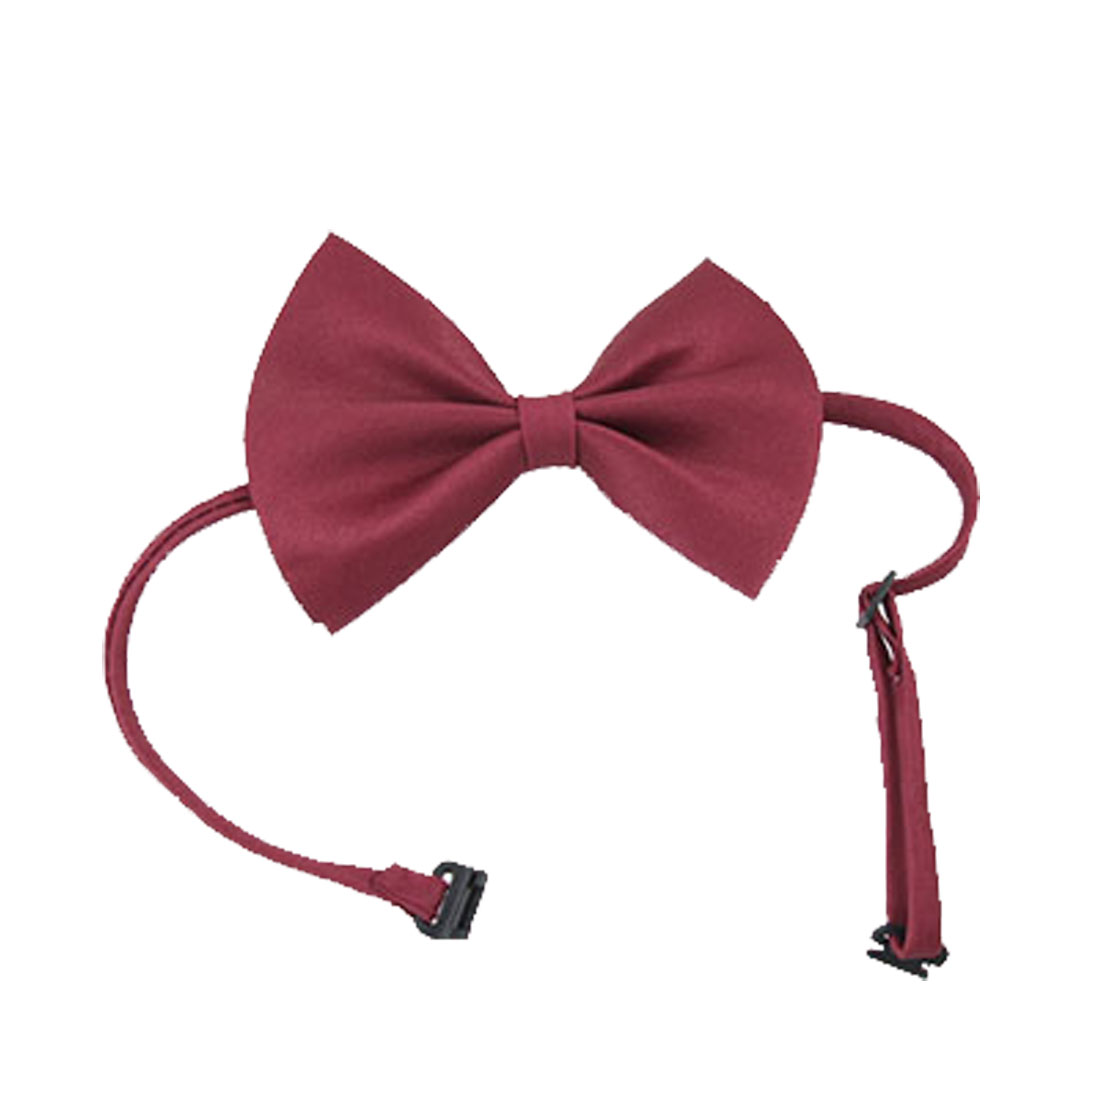 Red Two Layer Polyester Bow Tie Bowtie with adjustable Strape for Men